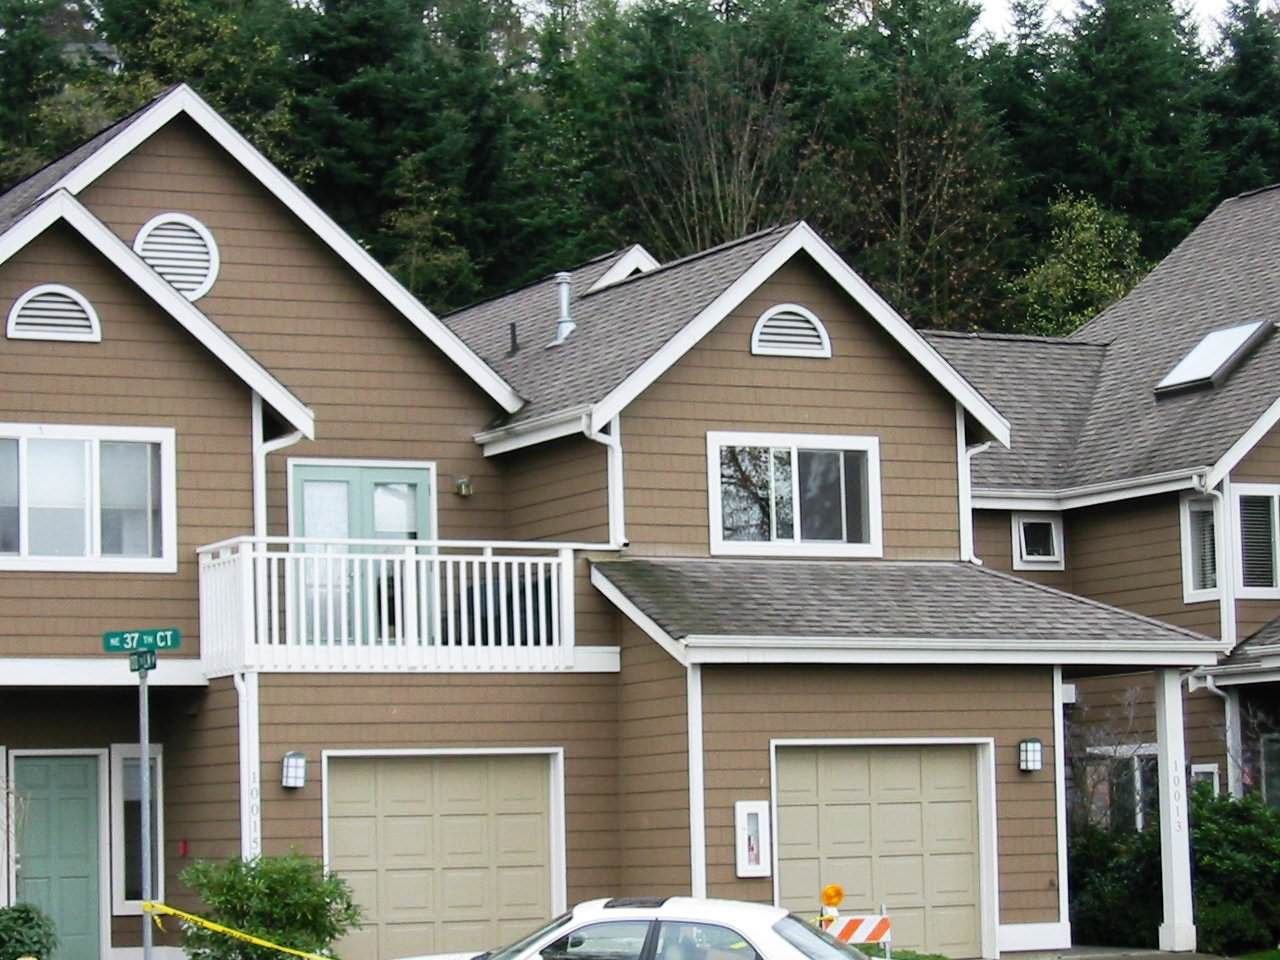 Sensational Mix And Match Exterior Paint Color Combinations Tips Inspired In Largest Home Design Picture Inspirations Pitcheantrous